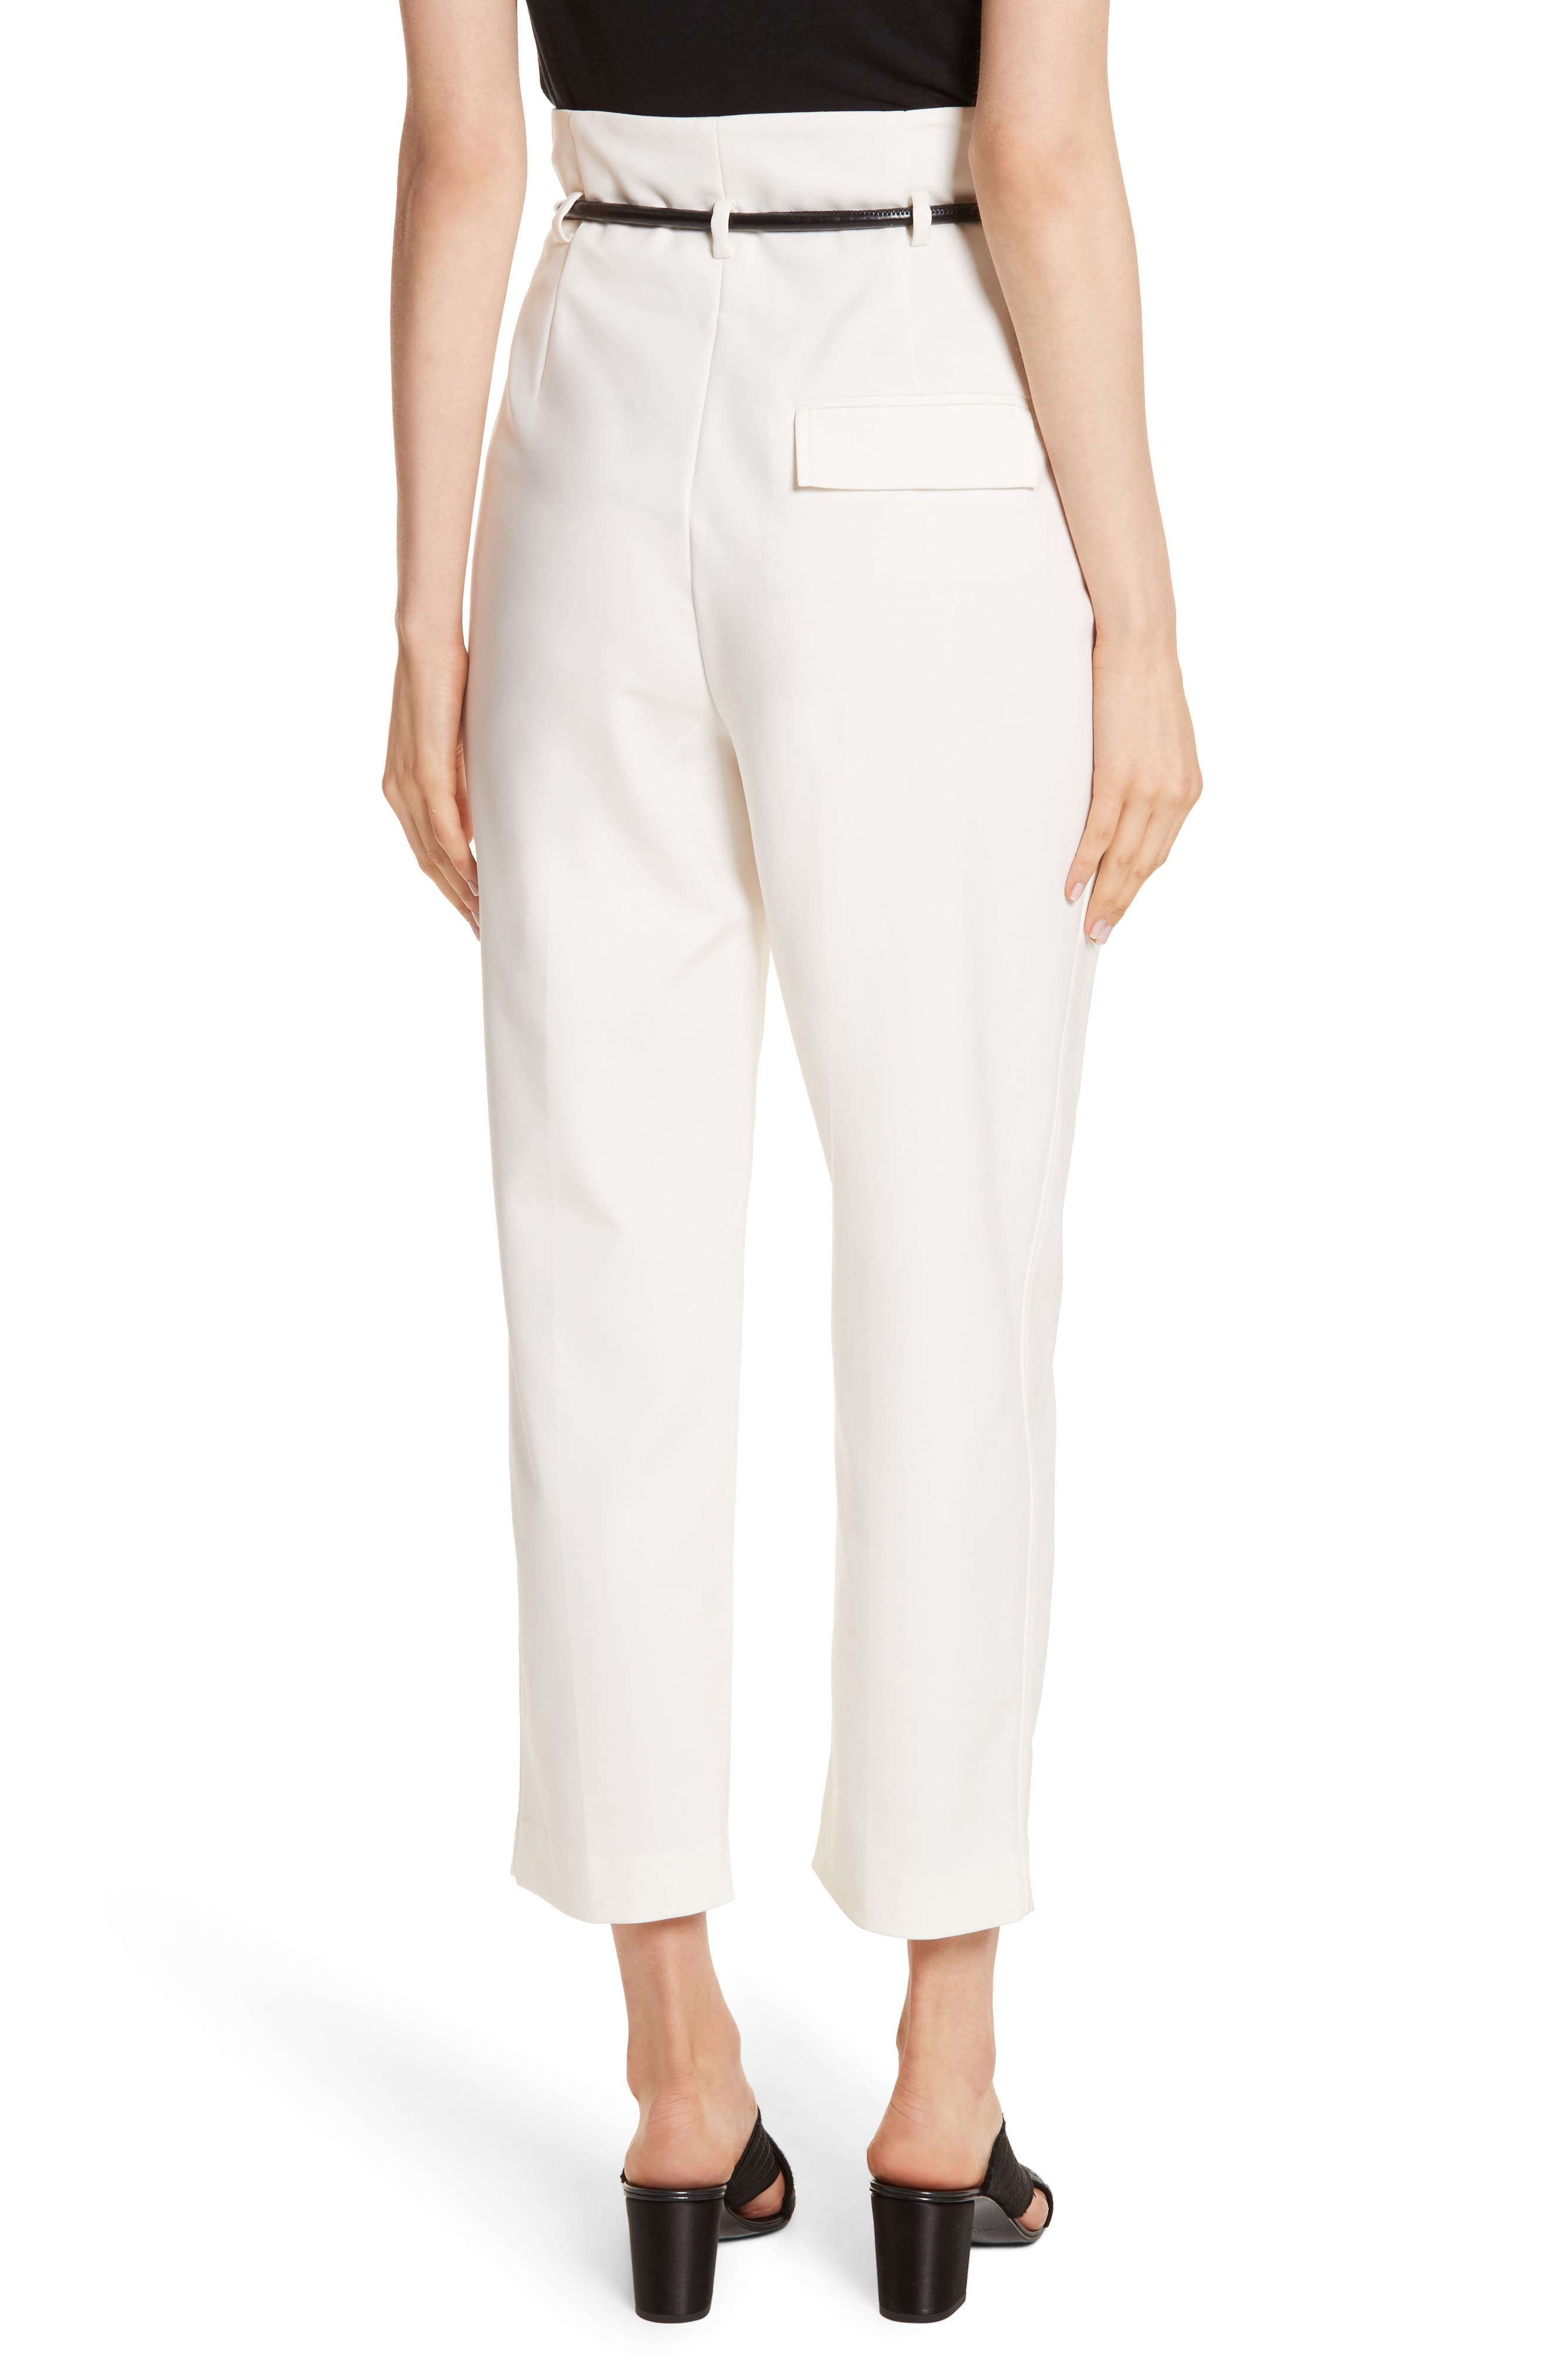 Origami Crop Flare Pants,                             Alternate thumbnail 2, color,                             White